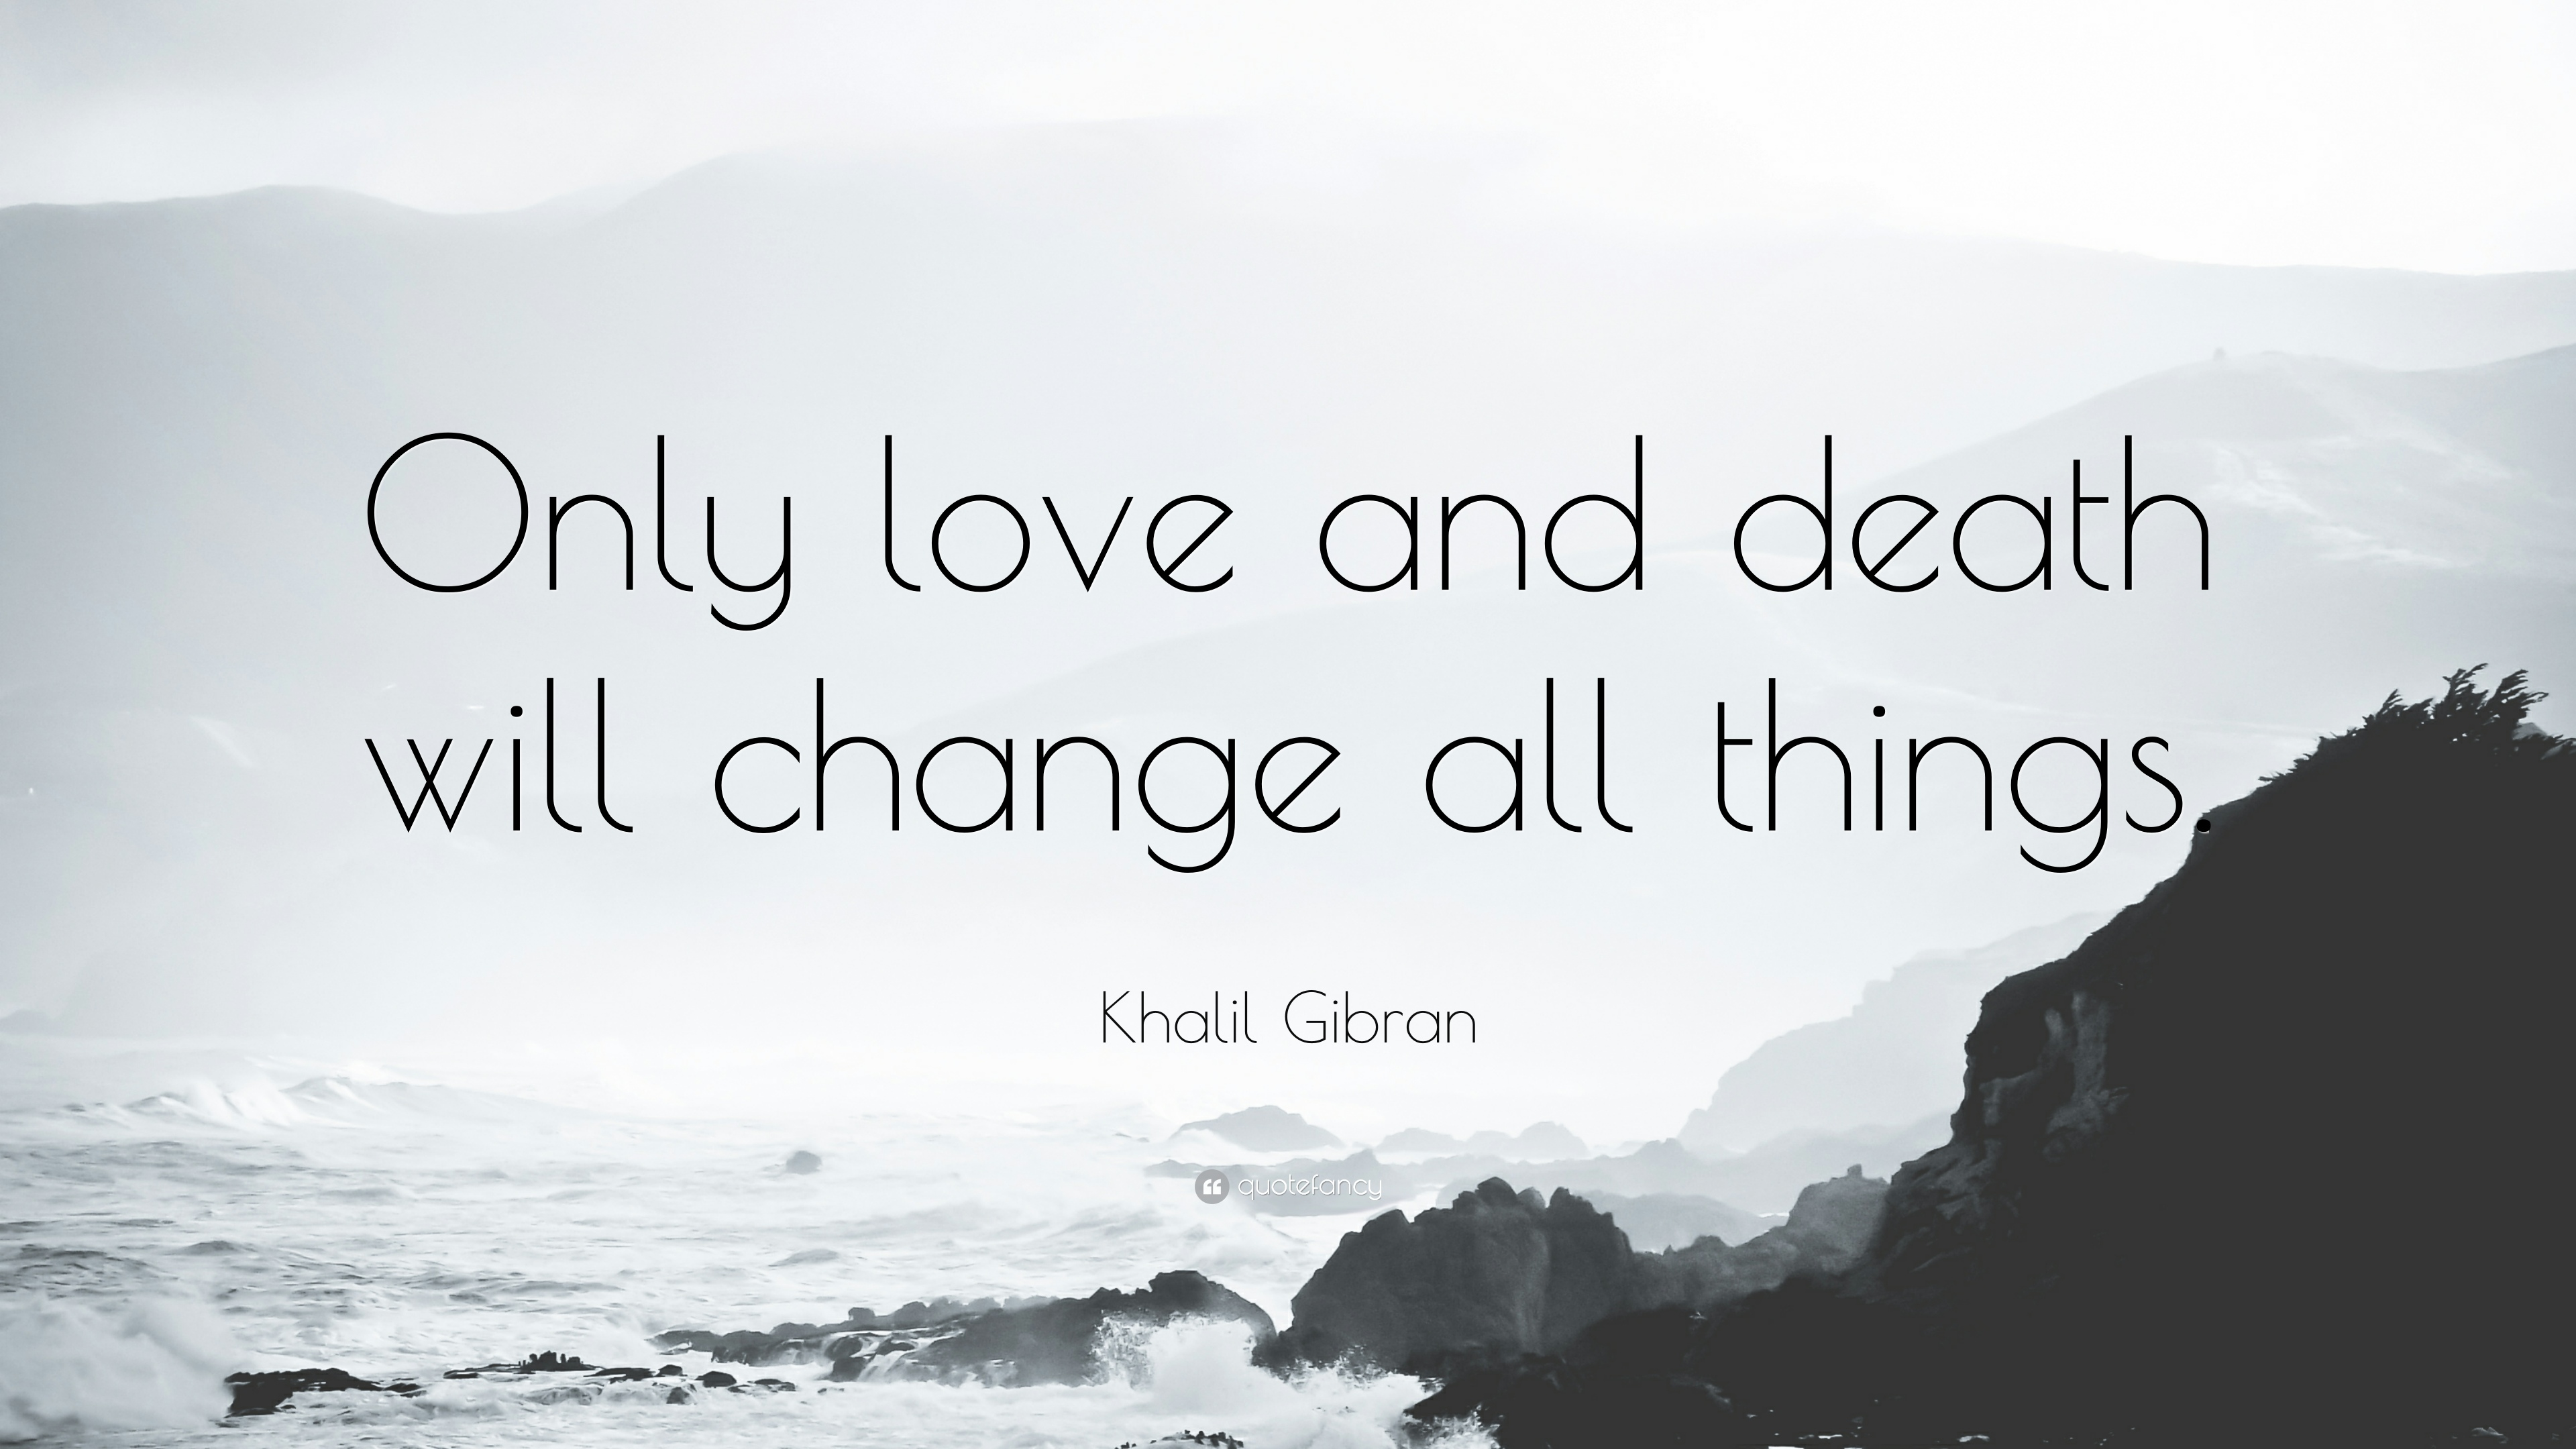 Wonderful Khalil Gibran Quote: U201cOnly Love And Death Will Change All Things.u201d